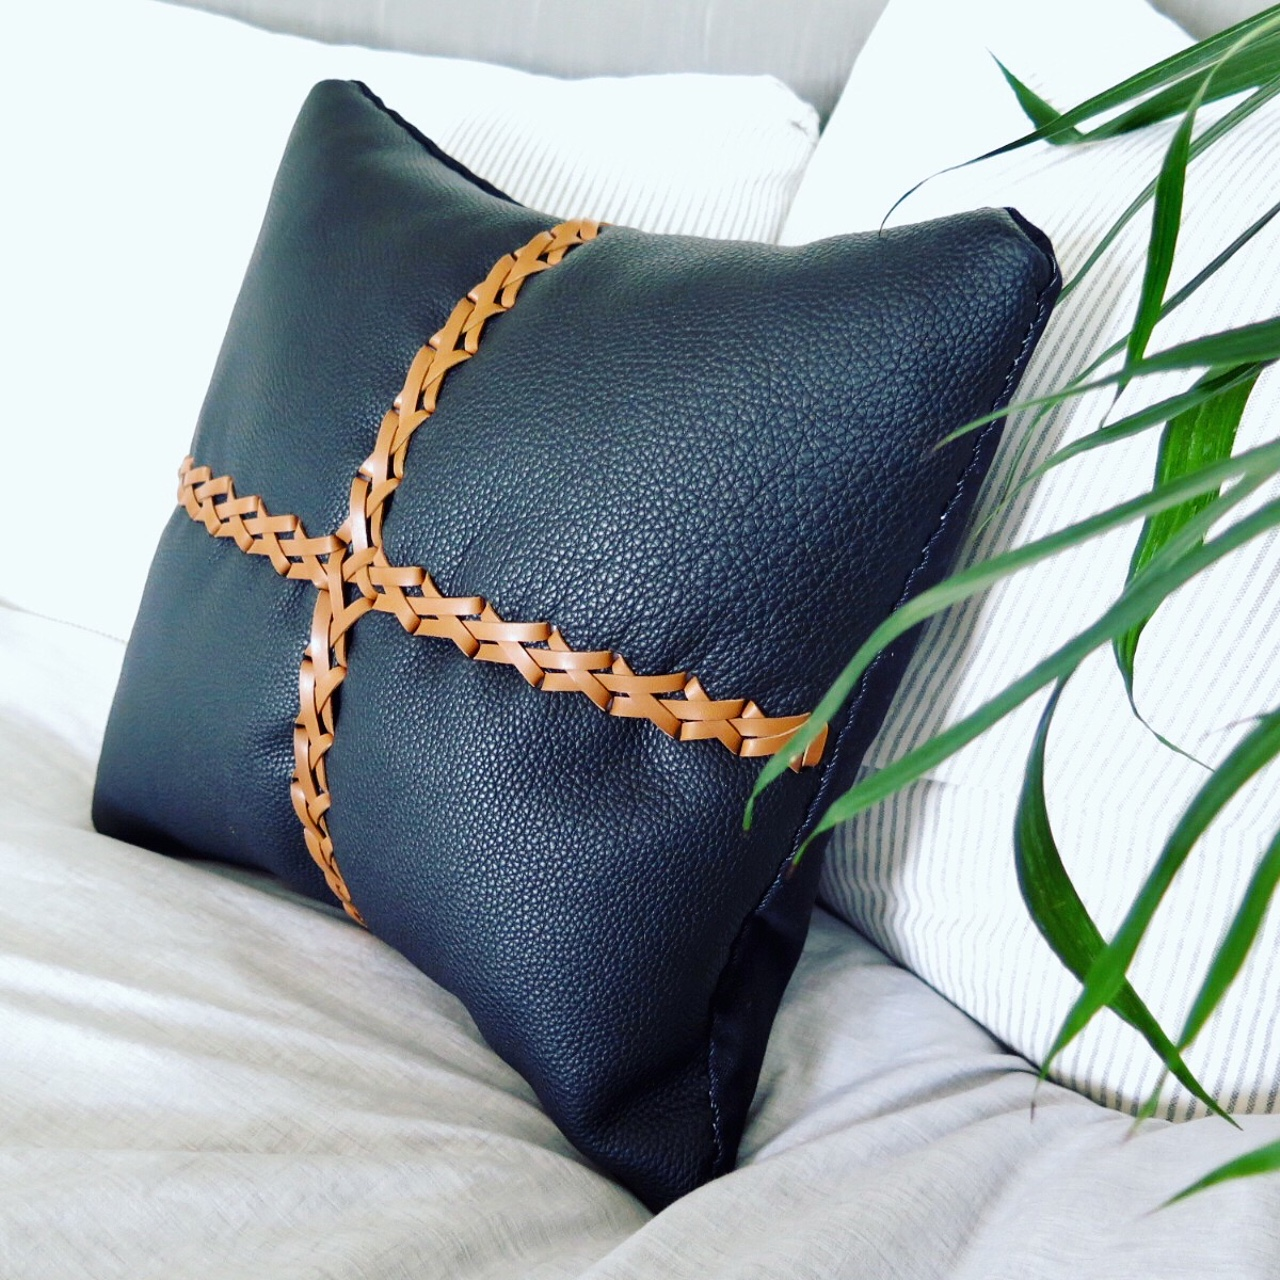 leather pillows, joey pillows, mary savel